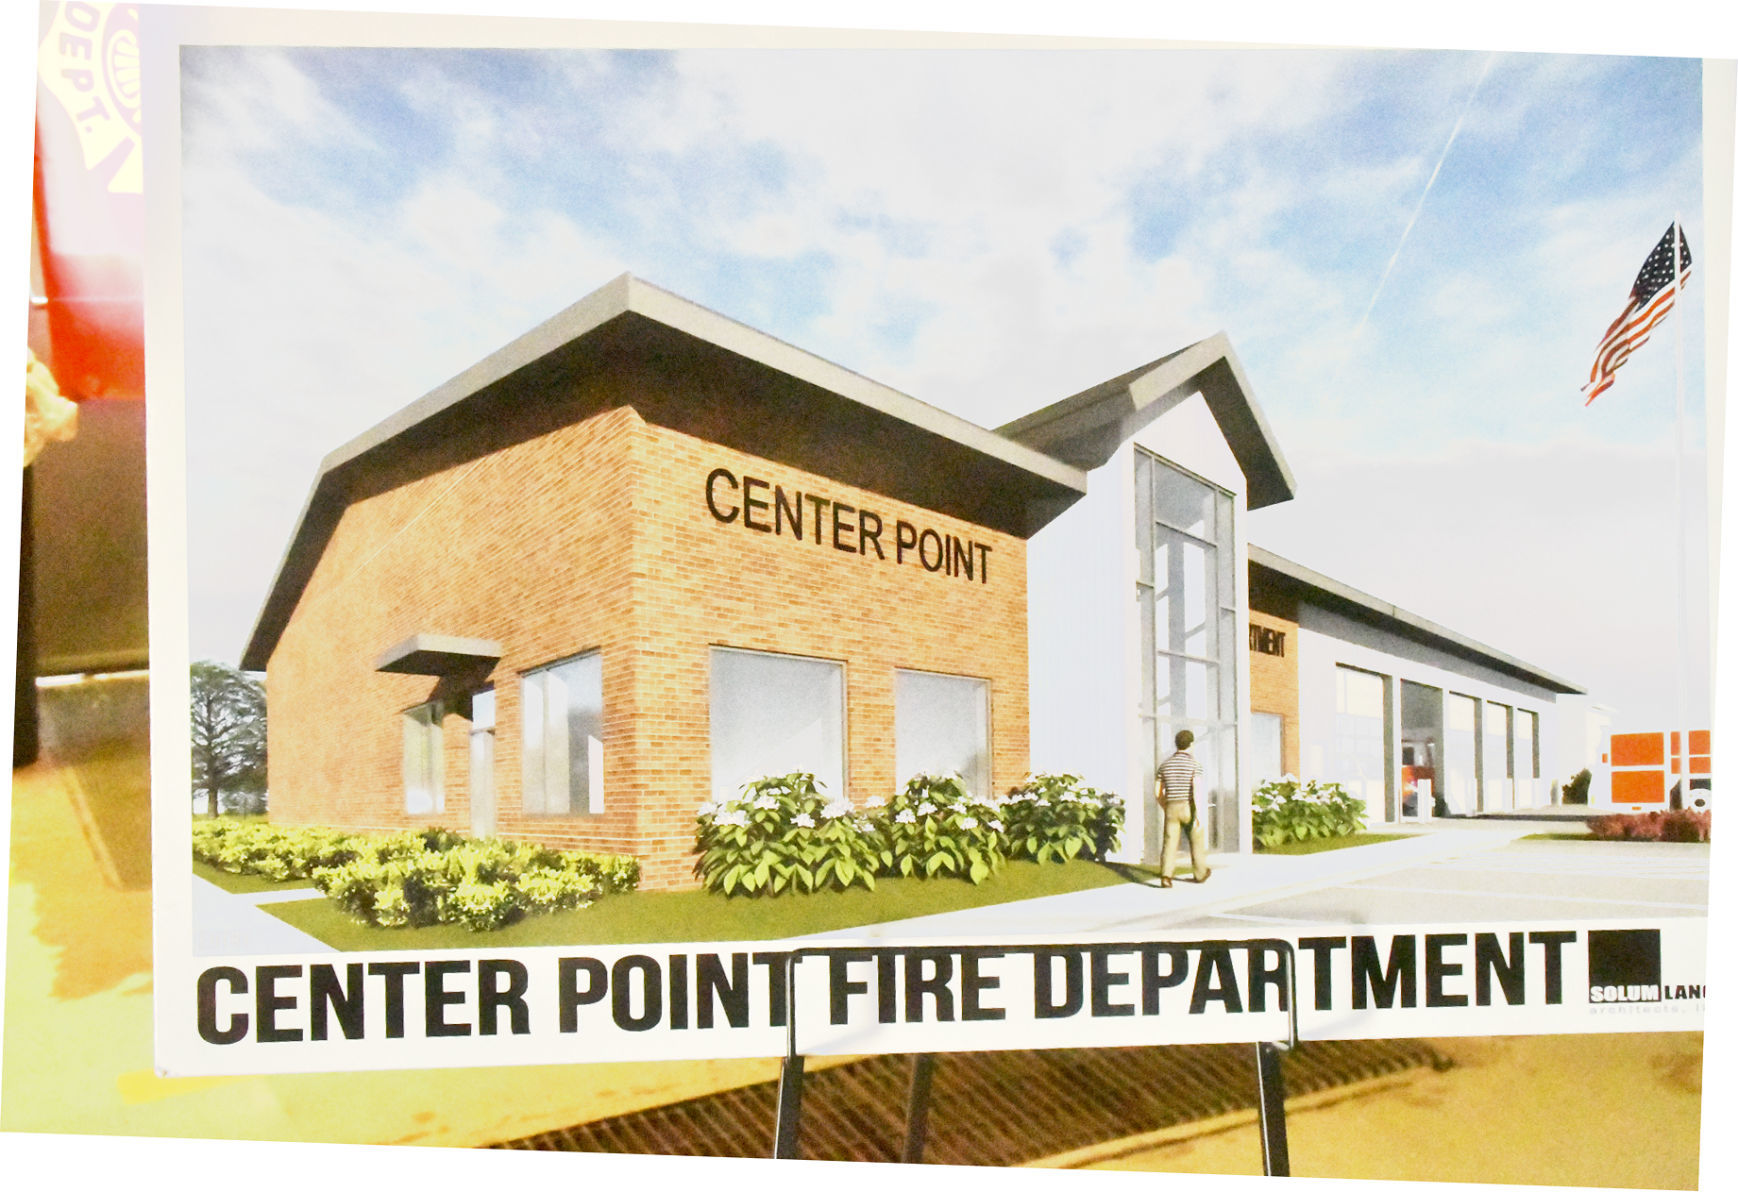 Exterior of proposed fire station